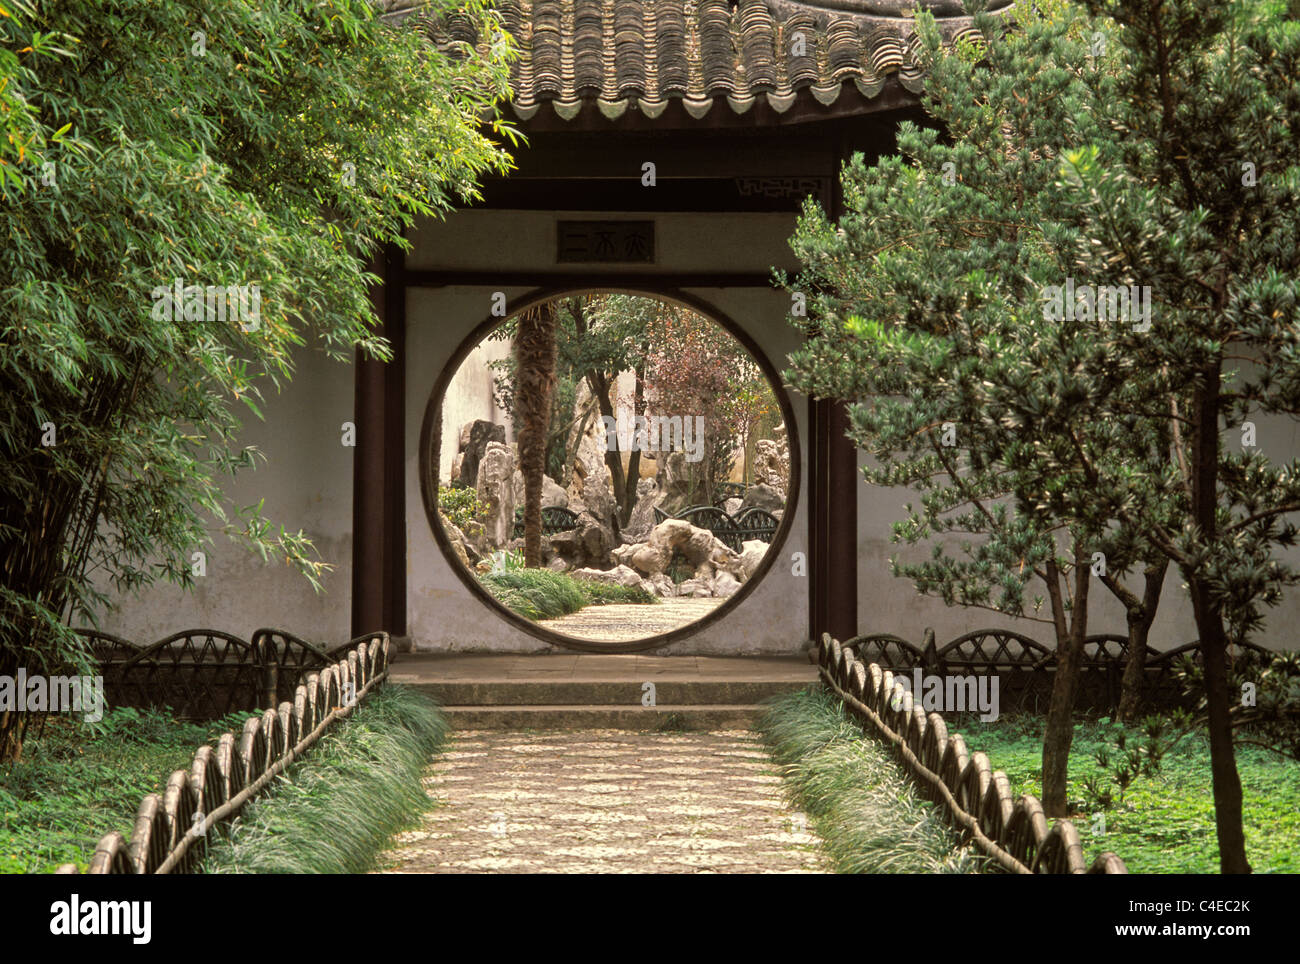 Moon gate at the Lingering Garden (Liu Yuan) located outside the ...